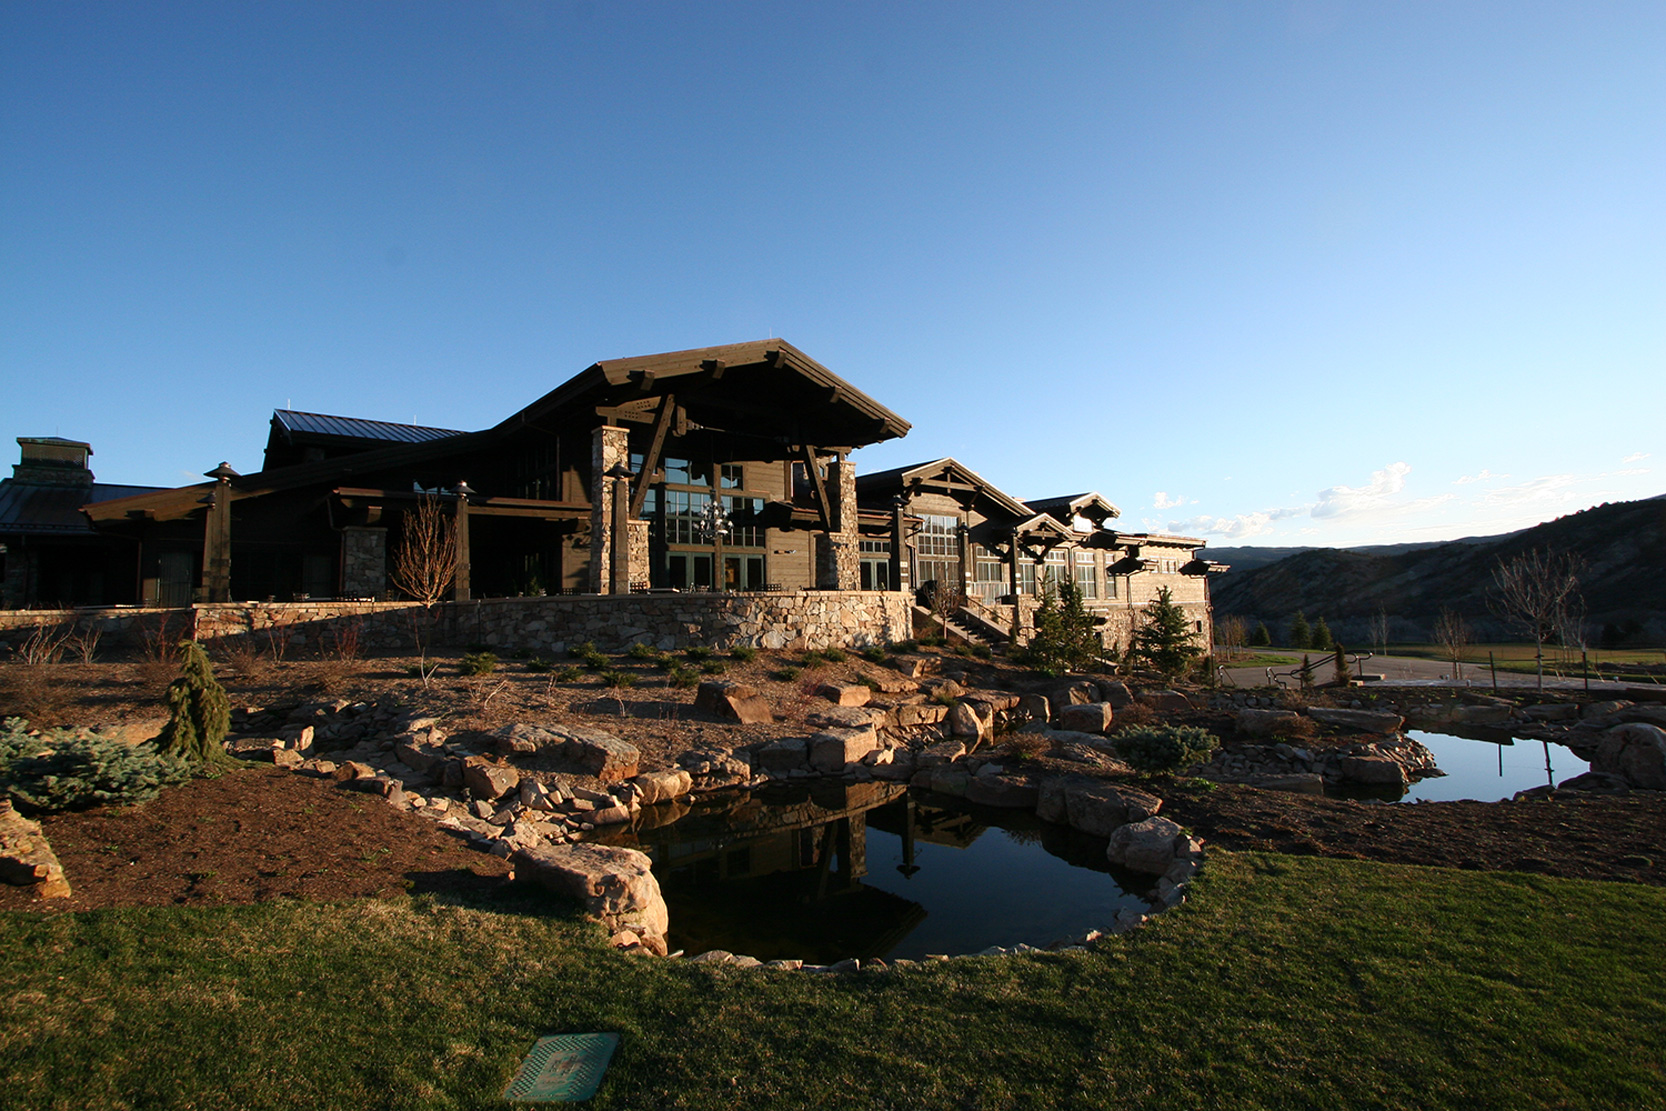 Frost Creek Mountain Club, Brush Creek Valley, Eagle, Colorado